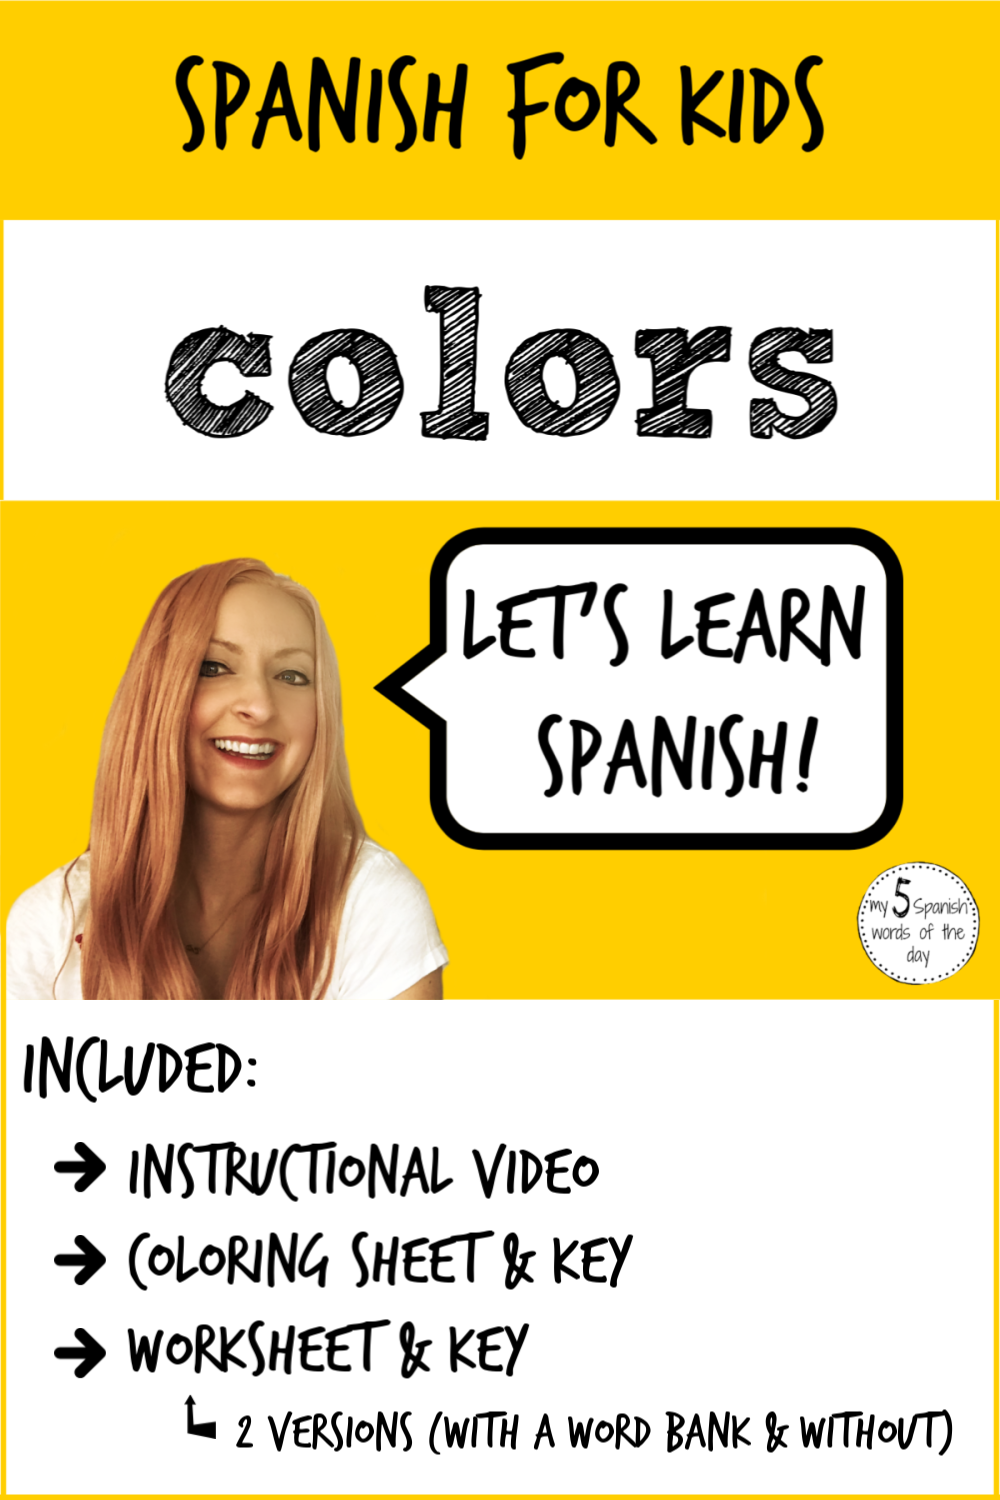 Spanish For Kids Colors In Spanish Learning Spanish Spanish Kids How To Speak Spanish [ 1500 x 1000 Pixel ]